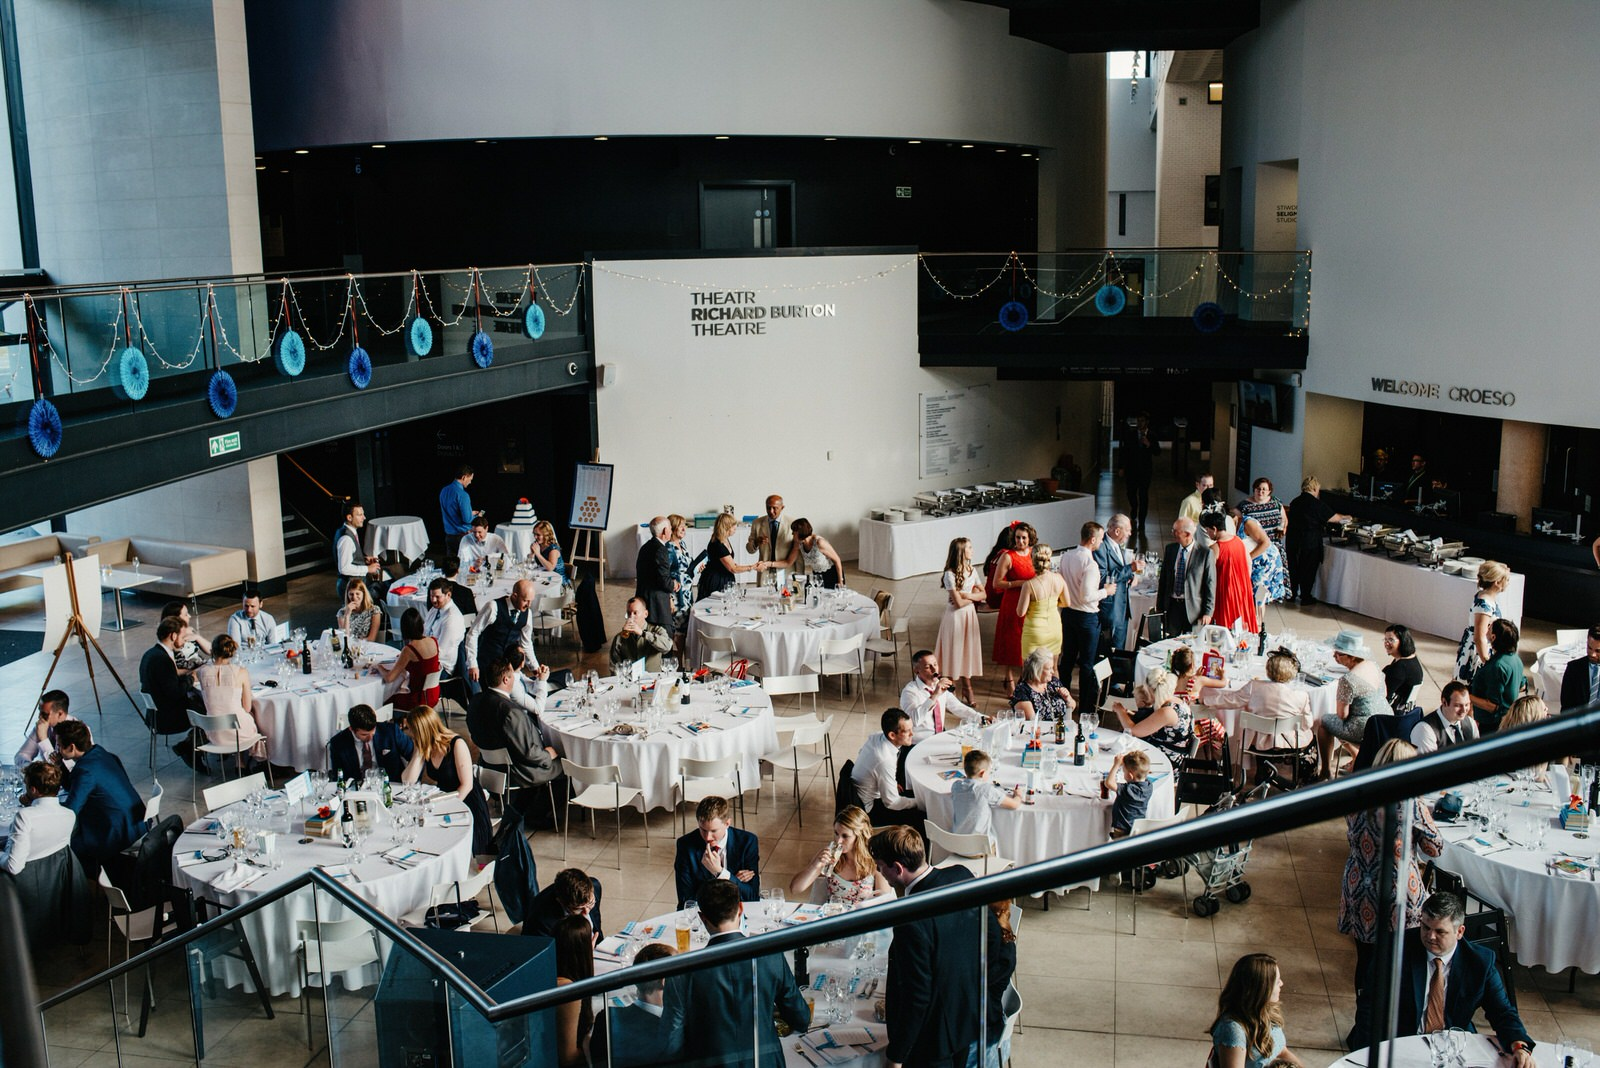 View of wedding guests from first floor at the Royal College of Music and Drama displaying blue fan decor and fairy lights